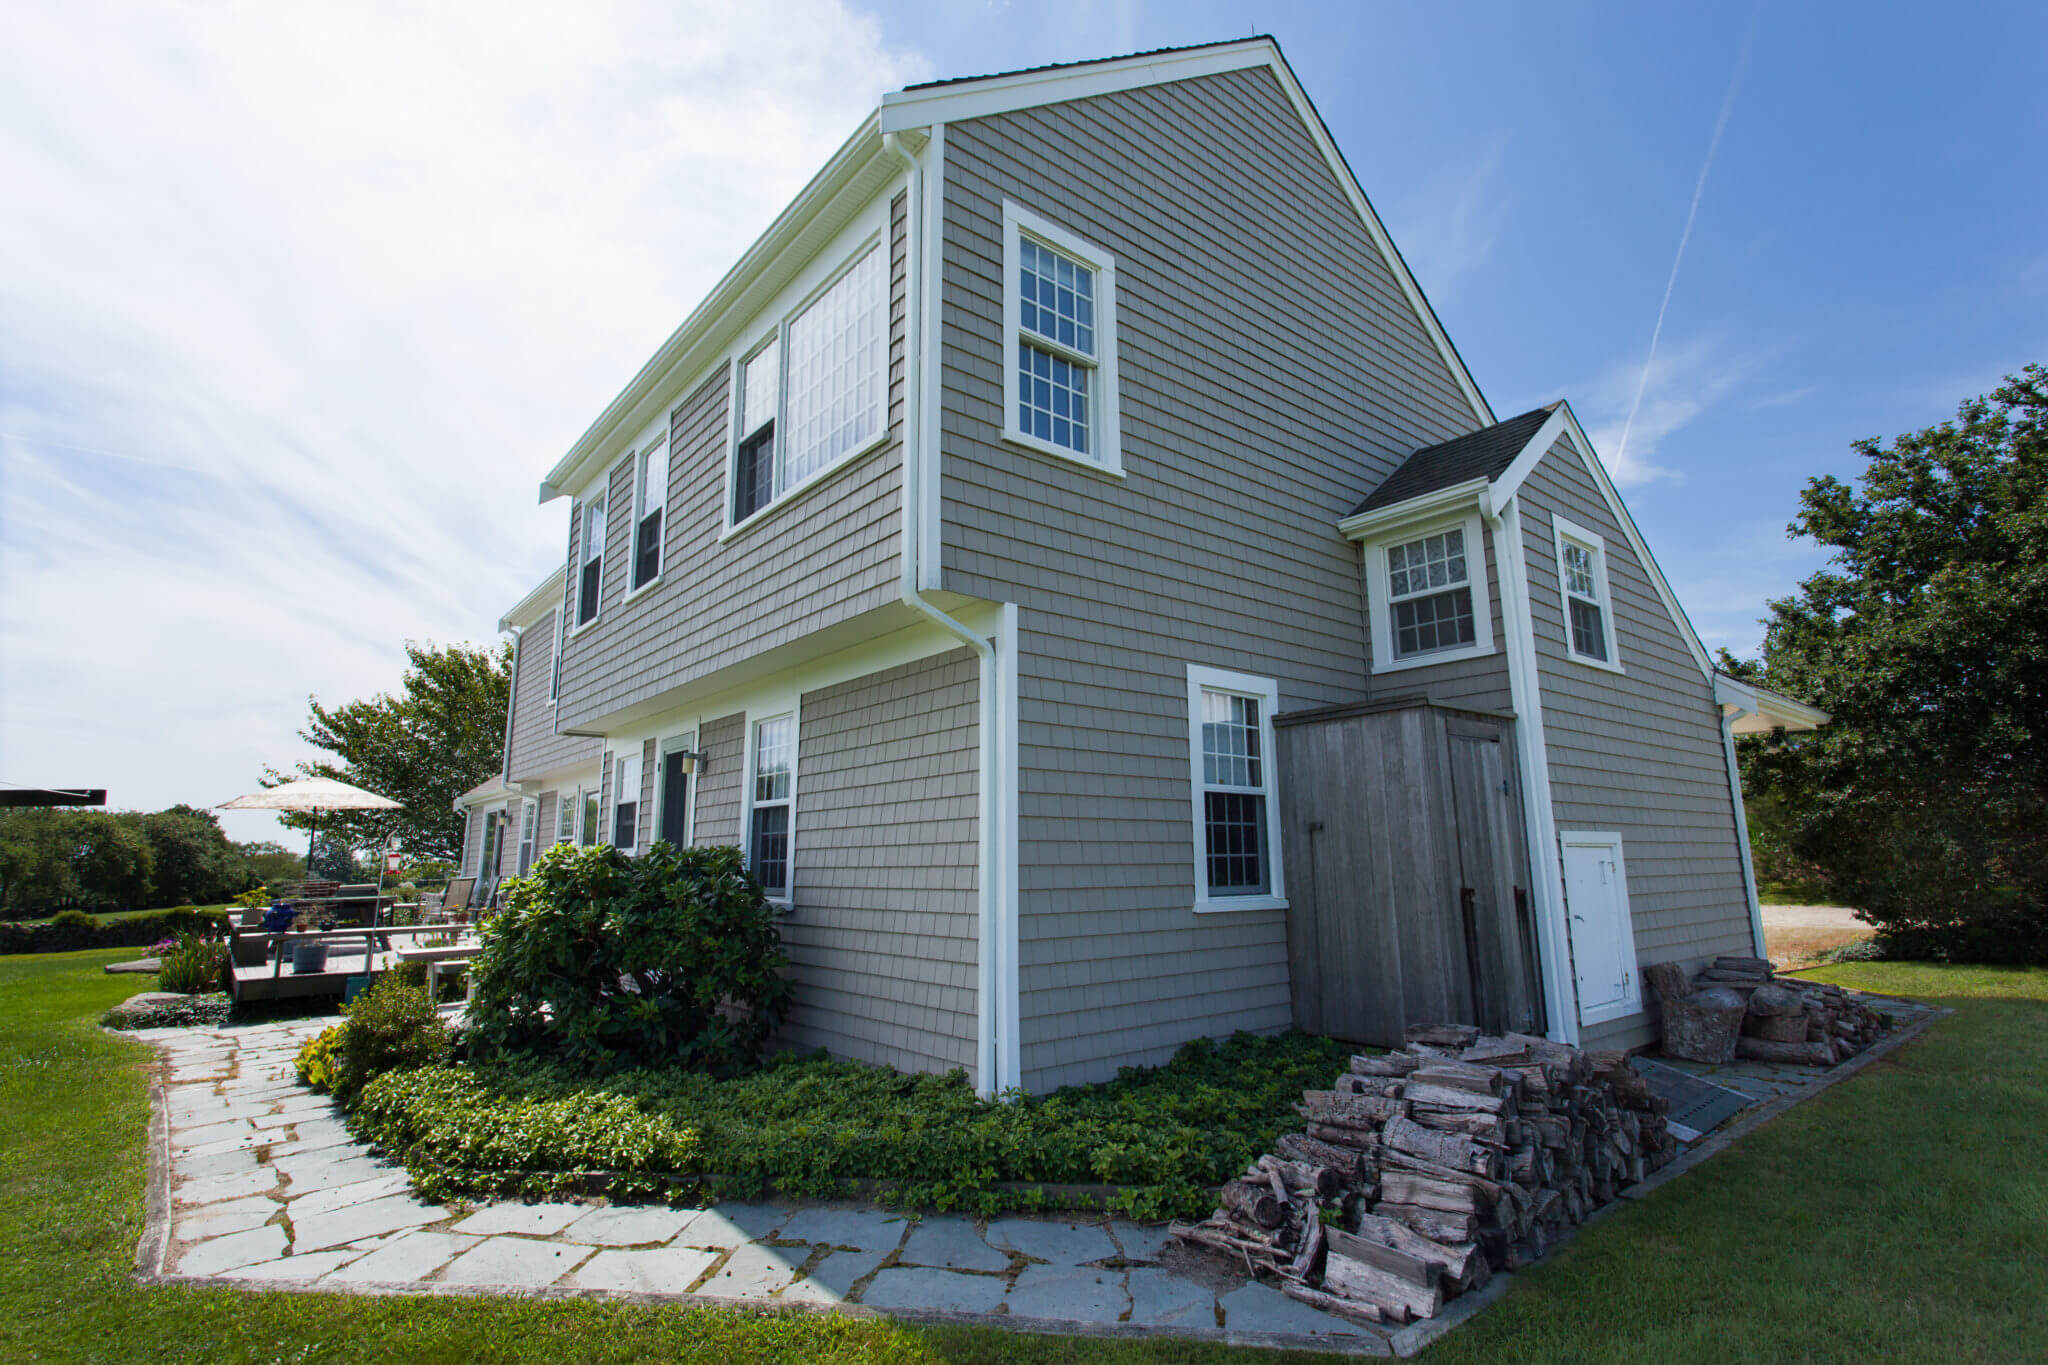 RI Home Vinyl Siding Installation: Cedar Impression 5″ Perfection Natural Clay with Snow White Trim